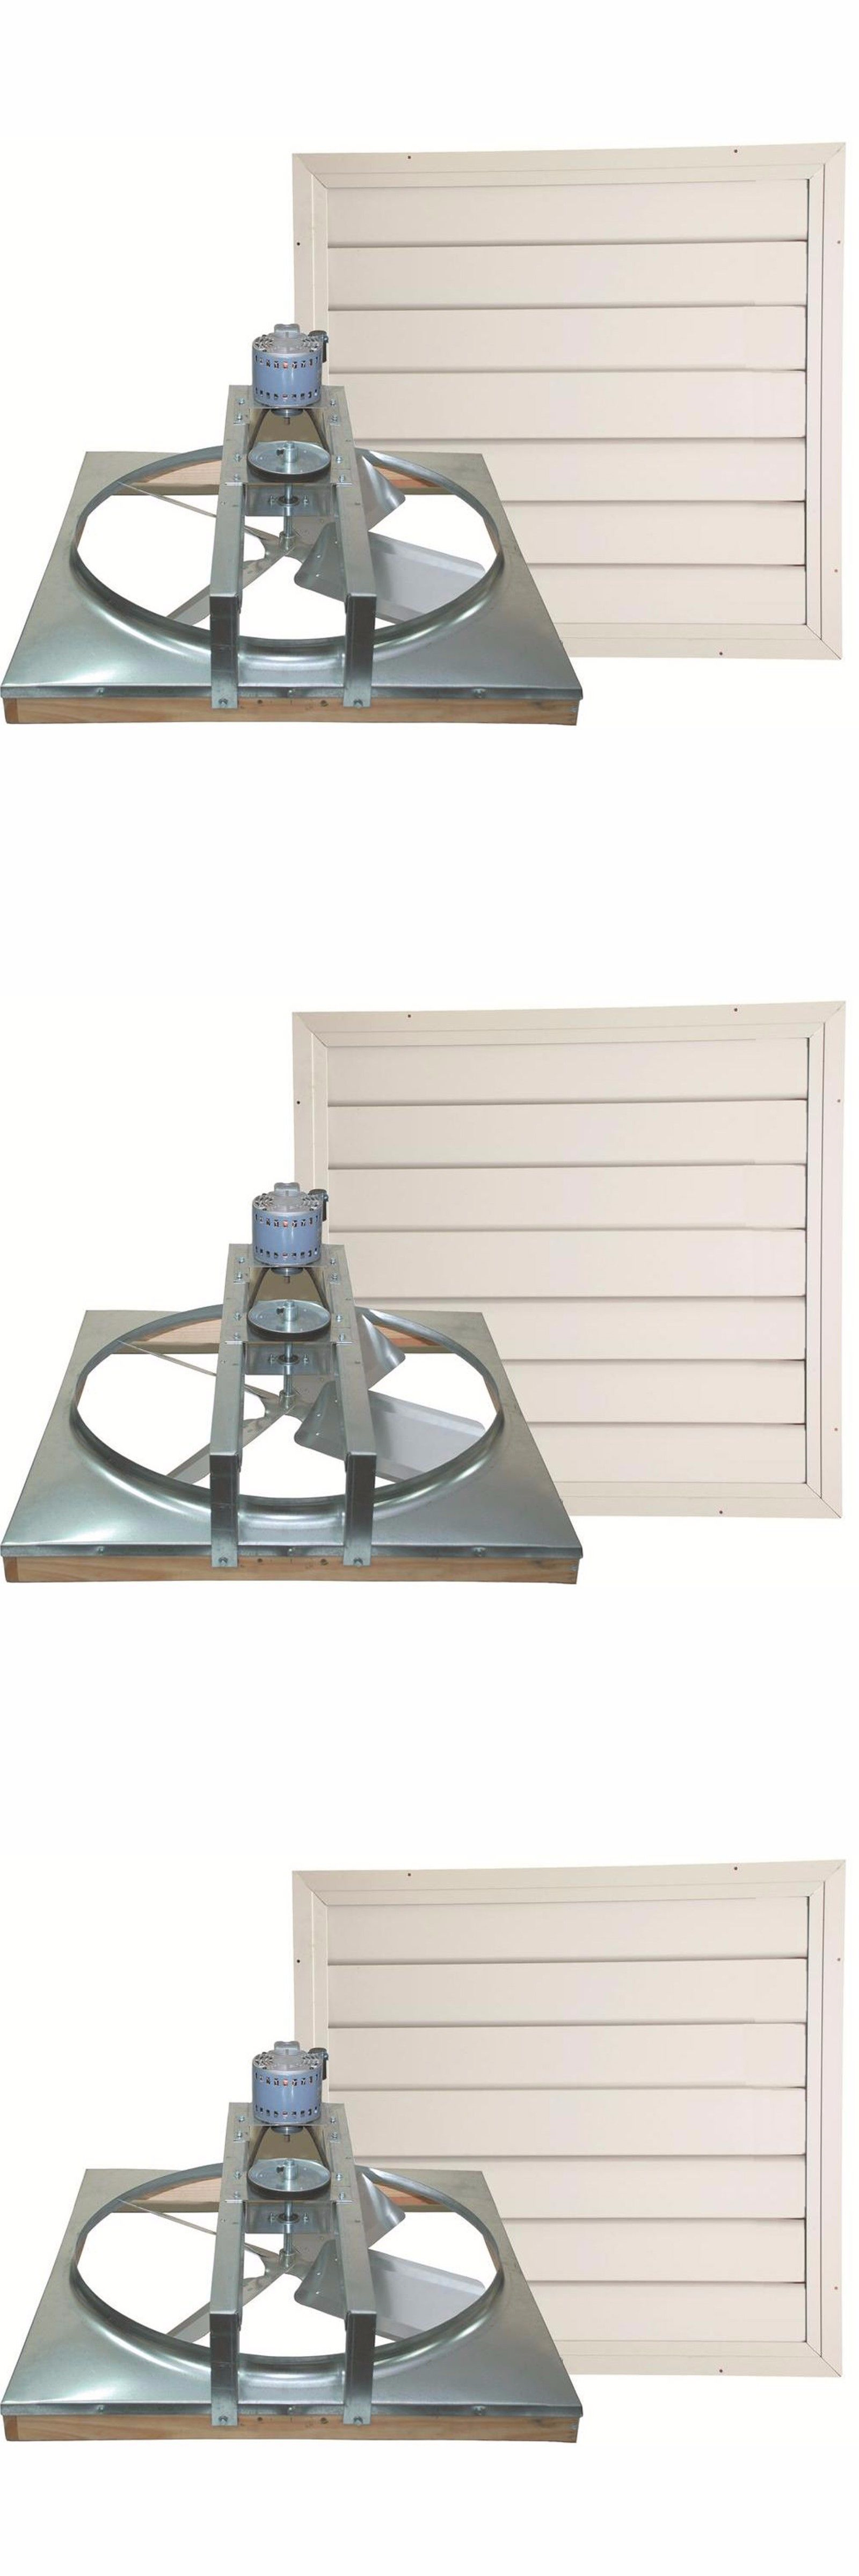 Heat recovery ventilator ebay - Other Home Heating And Cooling 20598 Cool Attic Dual Speed Whole House Fan Belt Drive